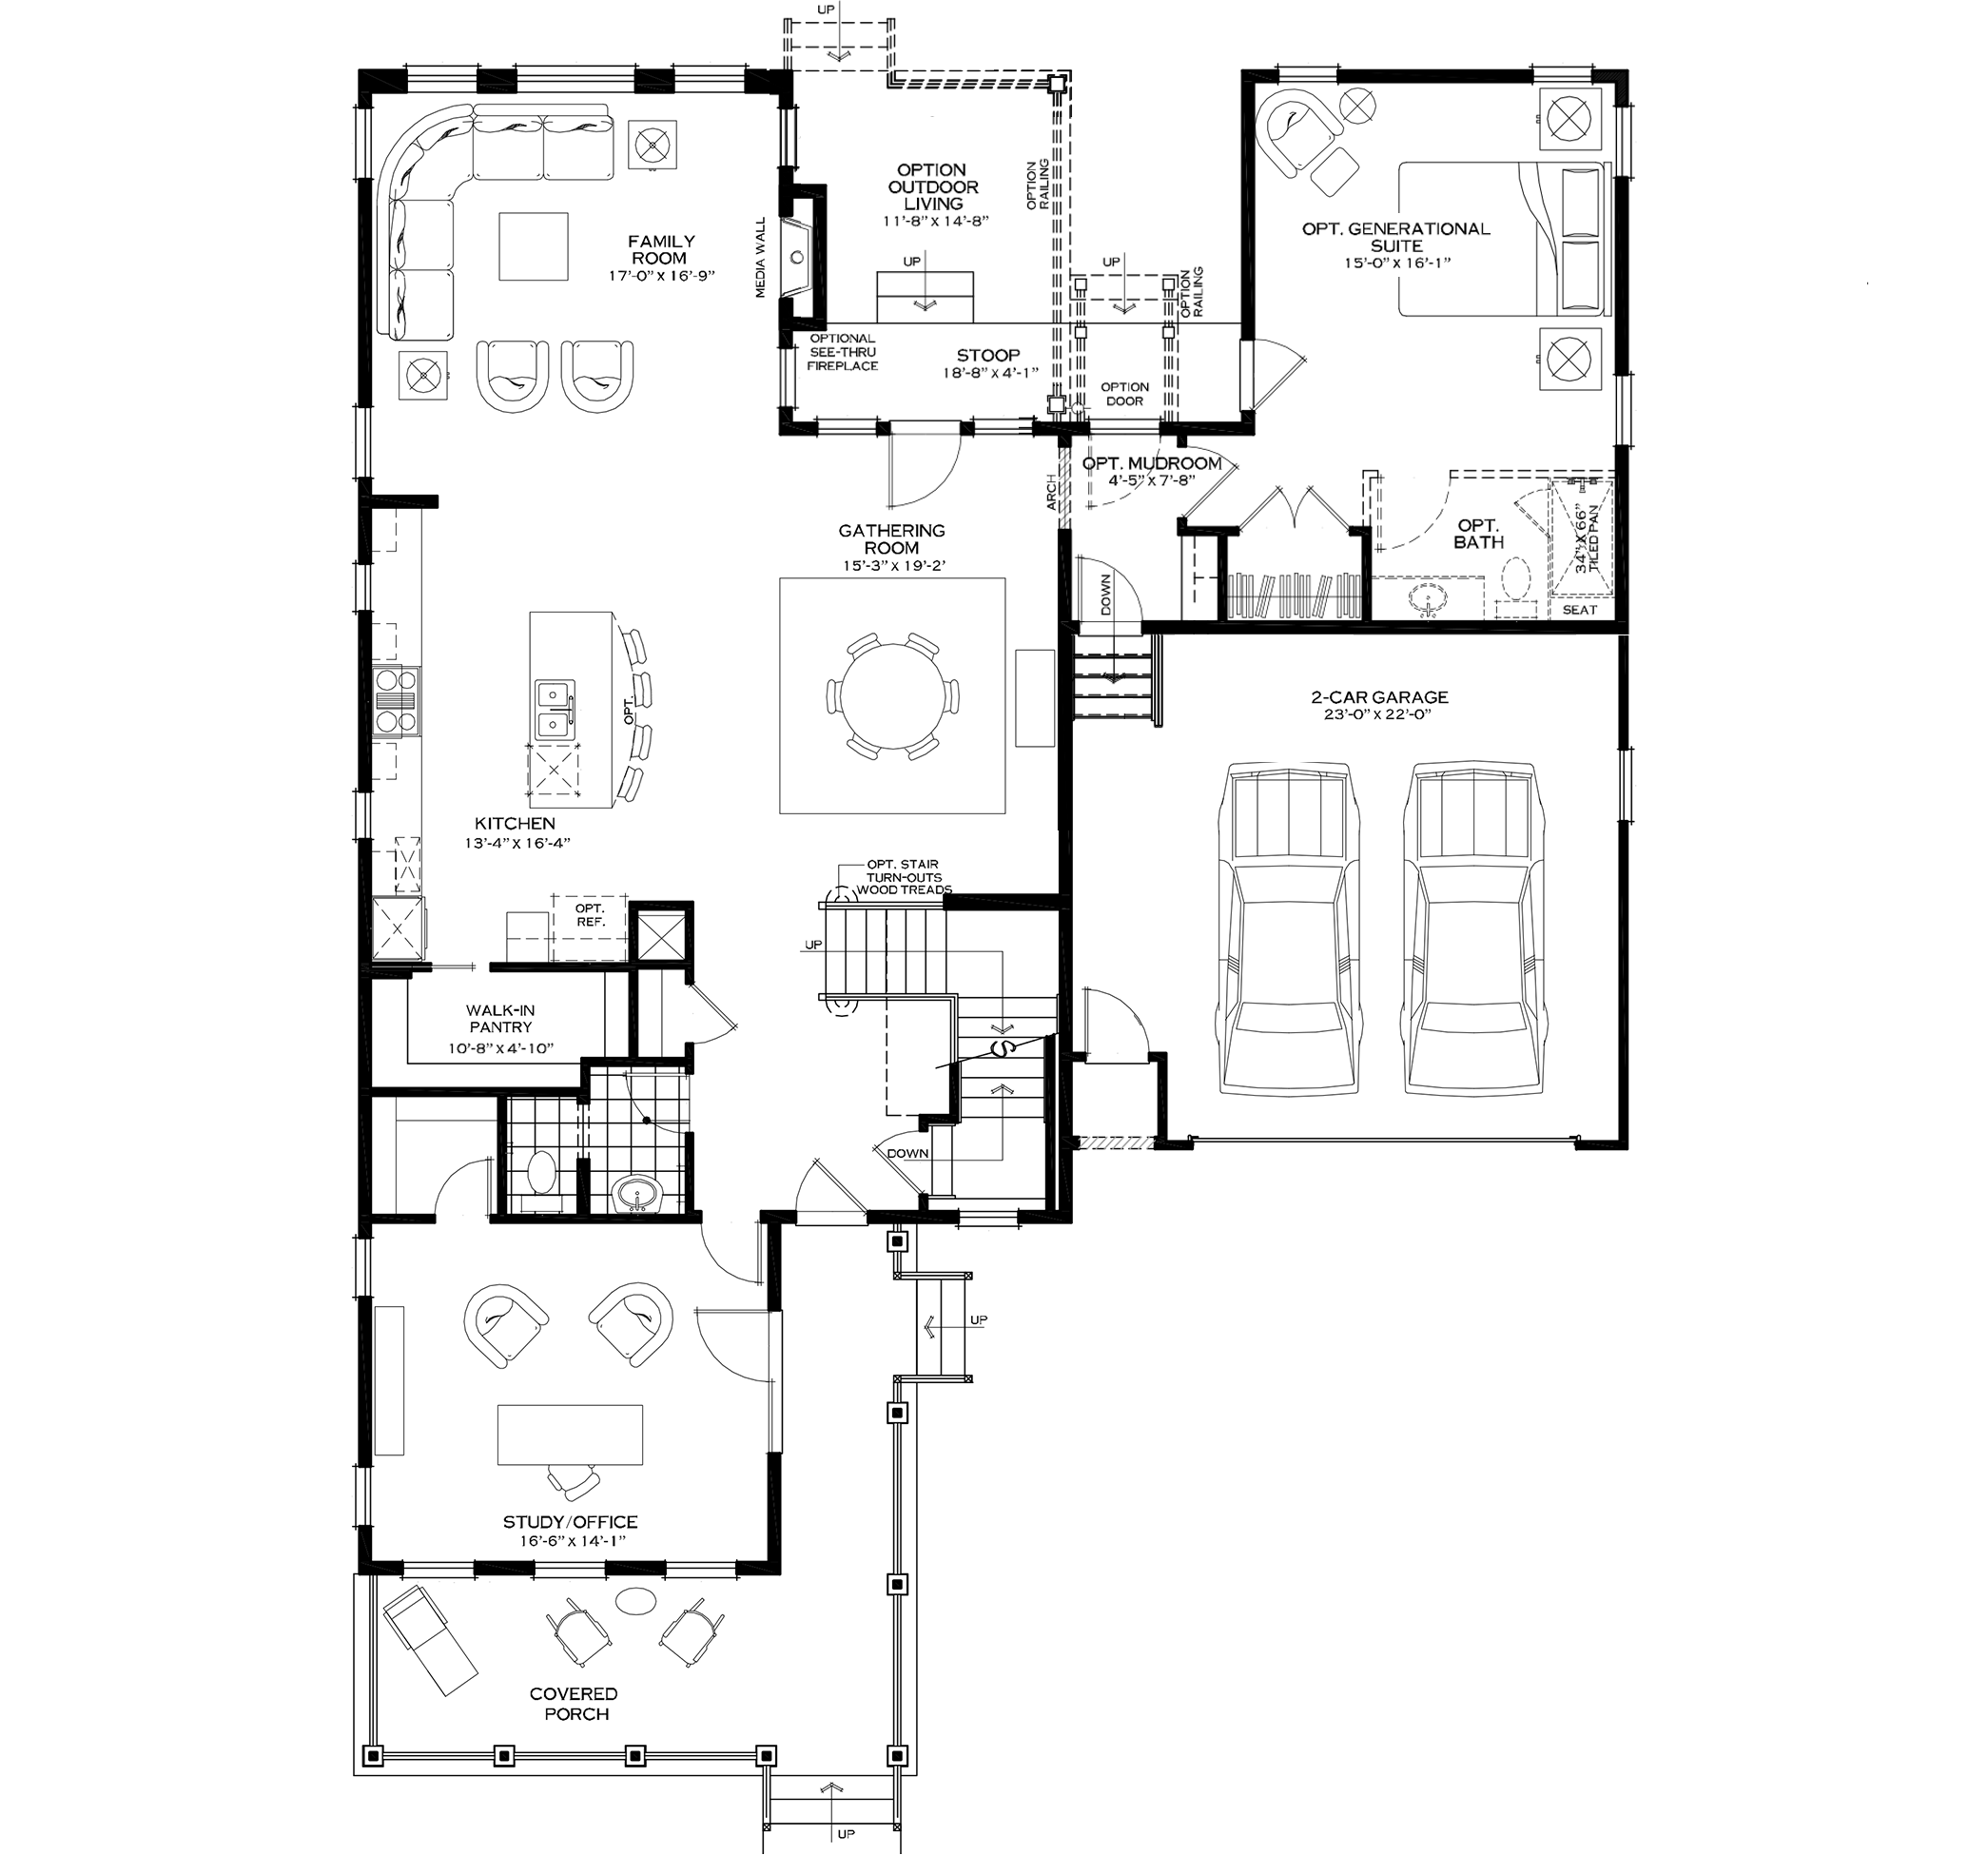 First Floor with Generational Suite Option